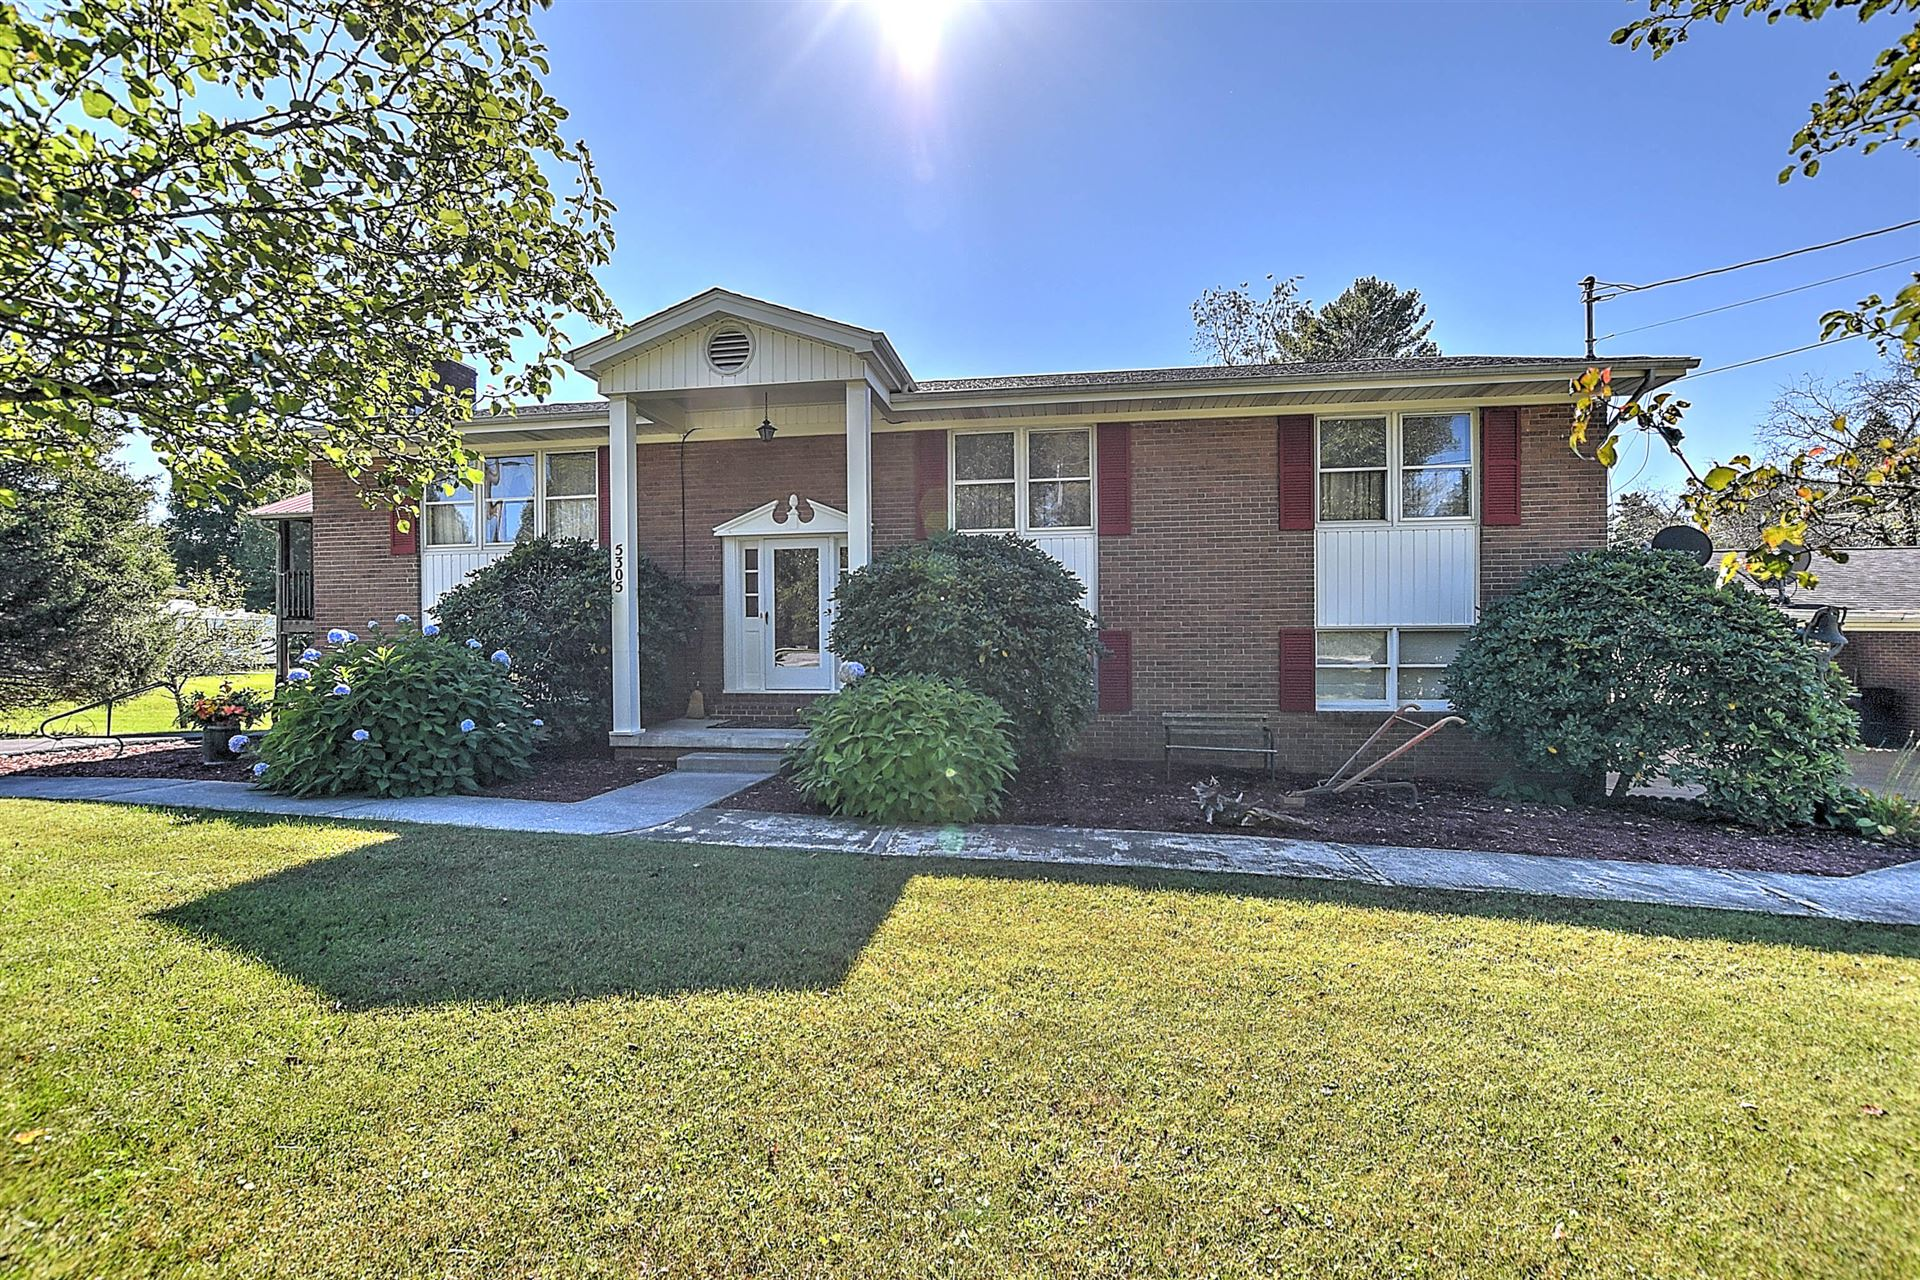 Photo of 5305 Lonesome Pine Road, Kingsport, TN 37664 (MLS # 9930144)